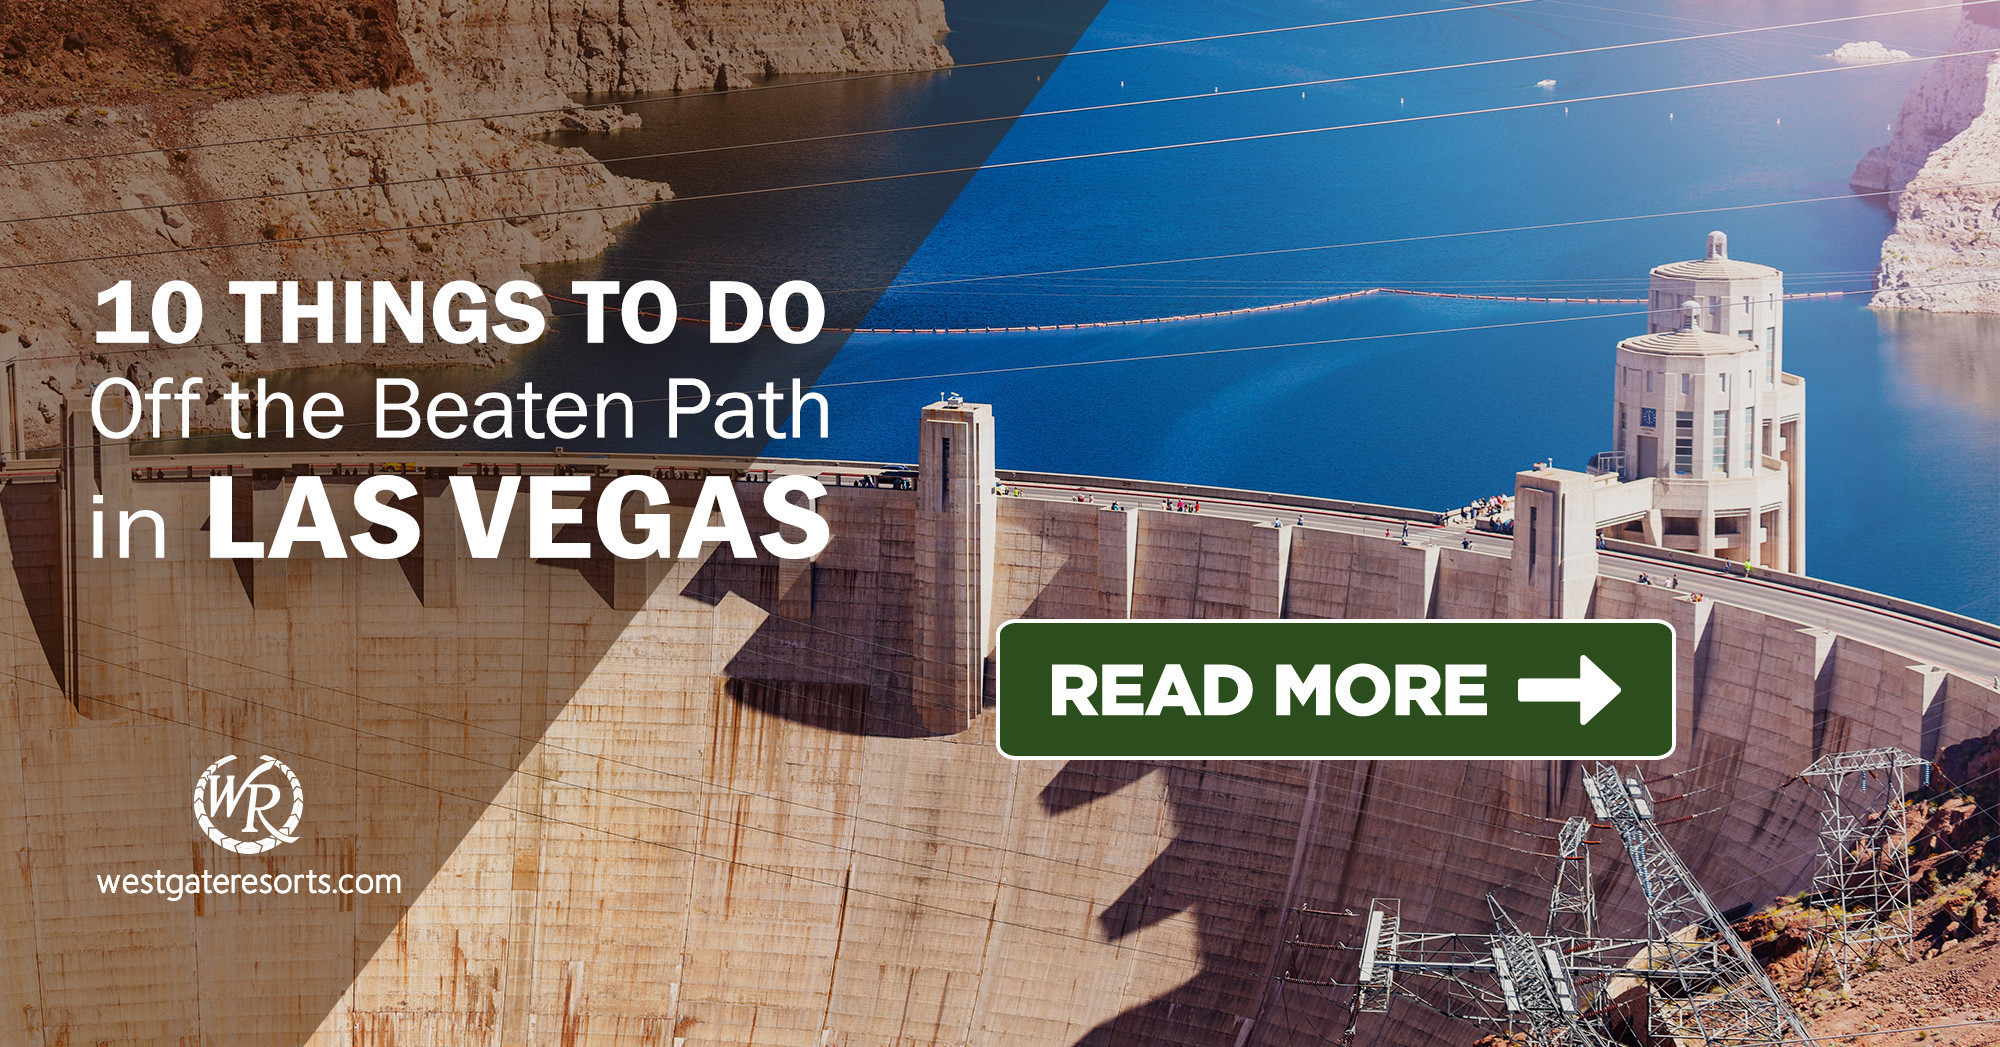 Off the Beaten Path in Las Vegas | Westgate Resorts Travel Blog